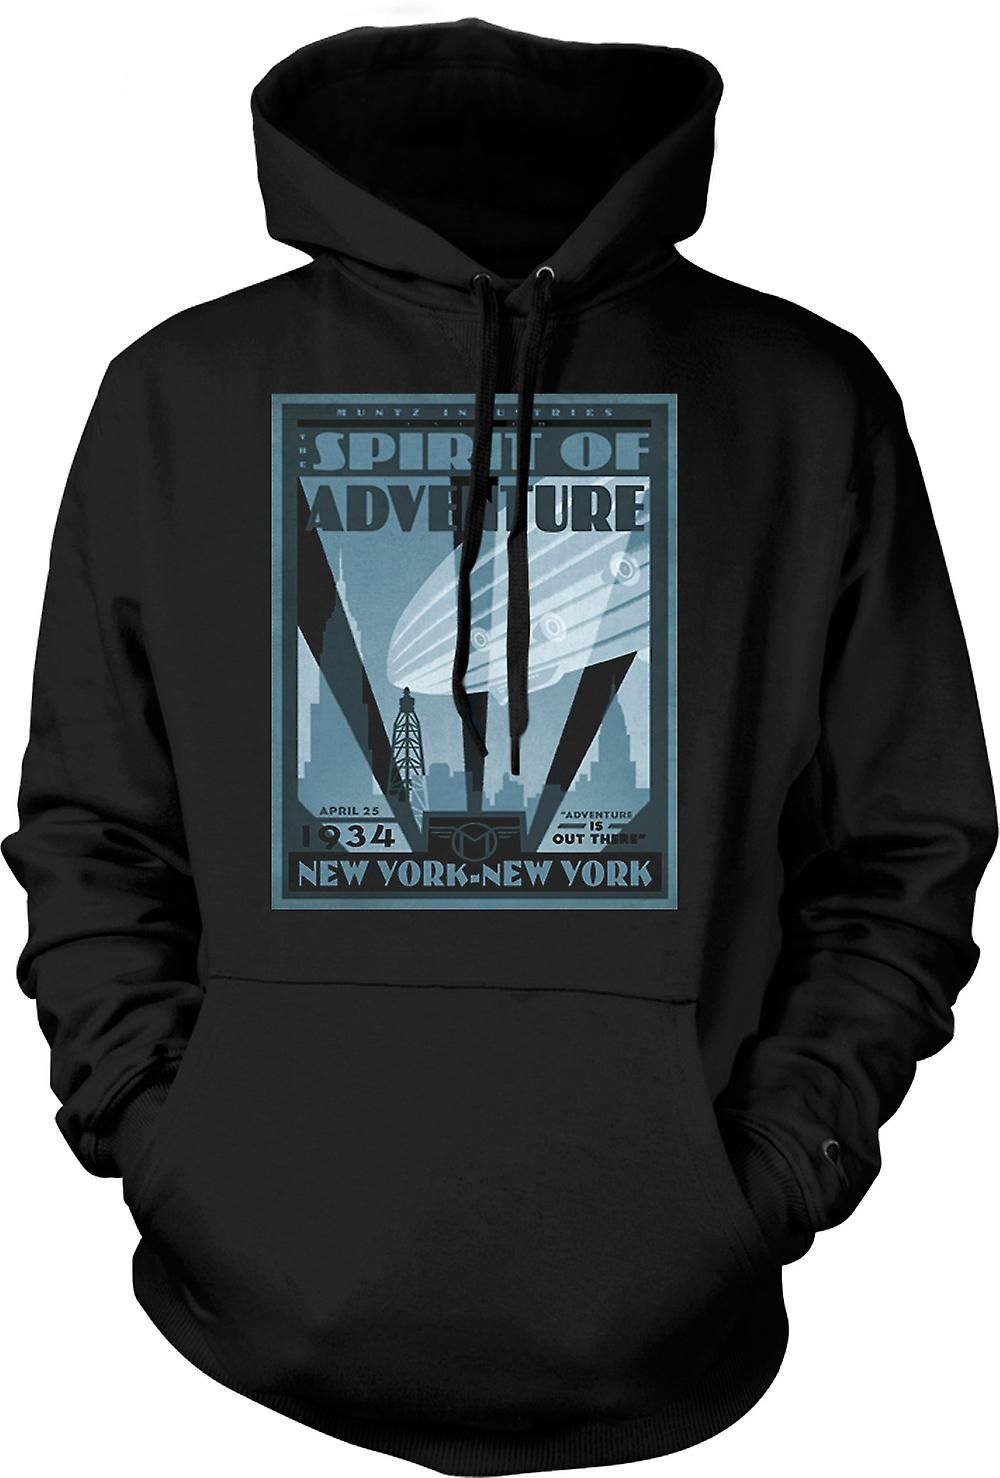 Mens Hoodie - Muntzs industrier New York - Cool